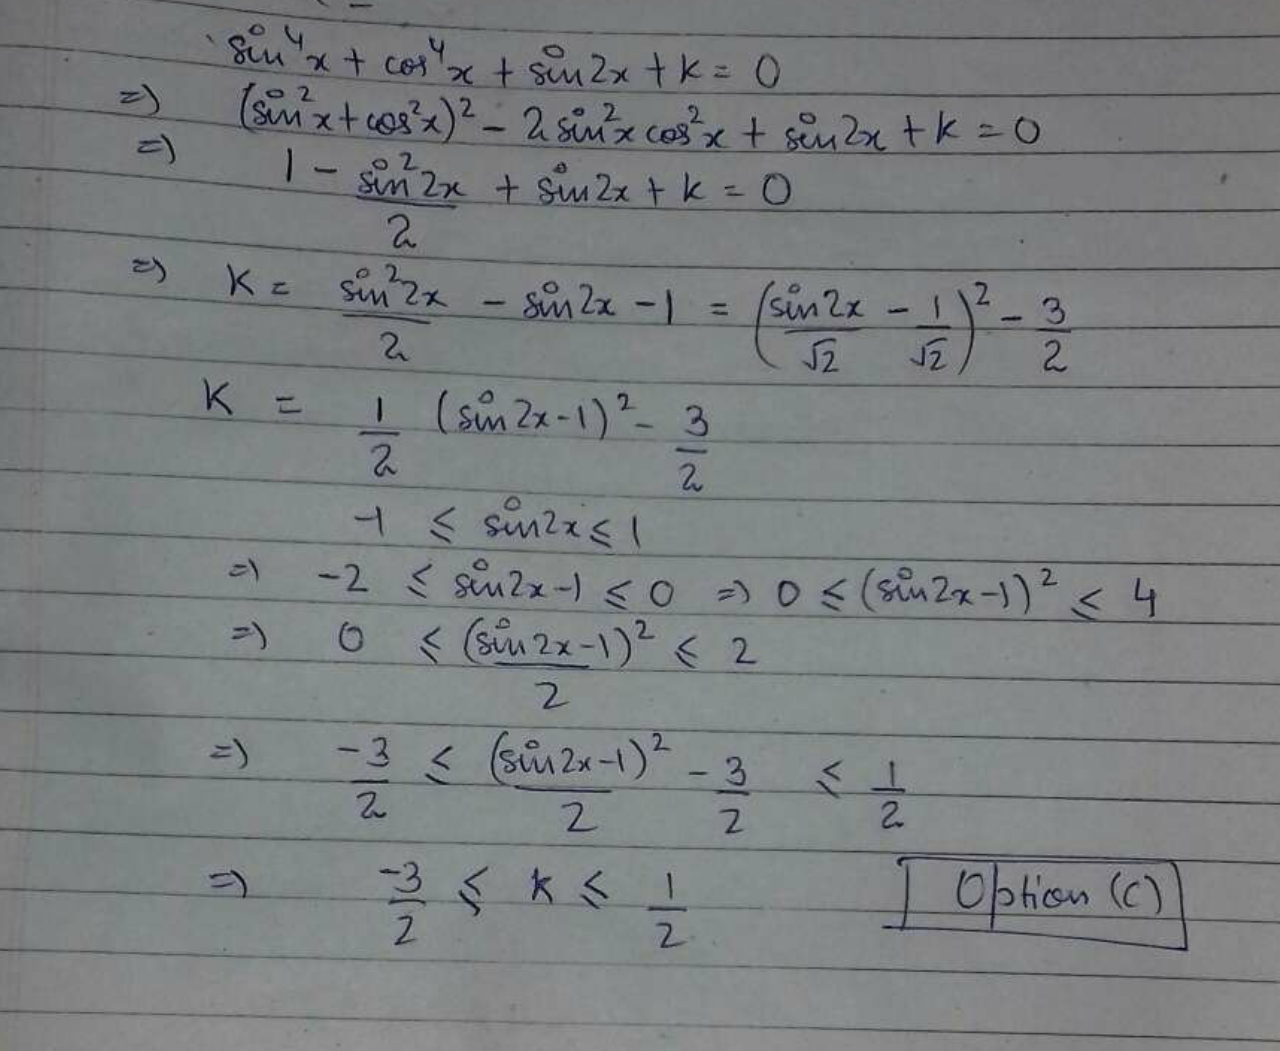 Equation sin^4x + cos^4x + sin 2x + k = 0 must have real solutions if